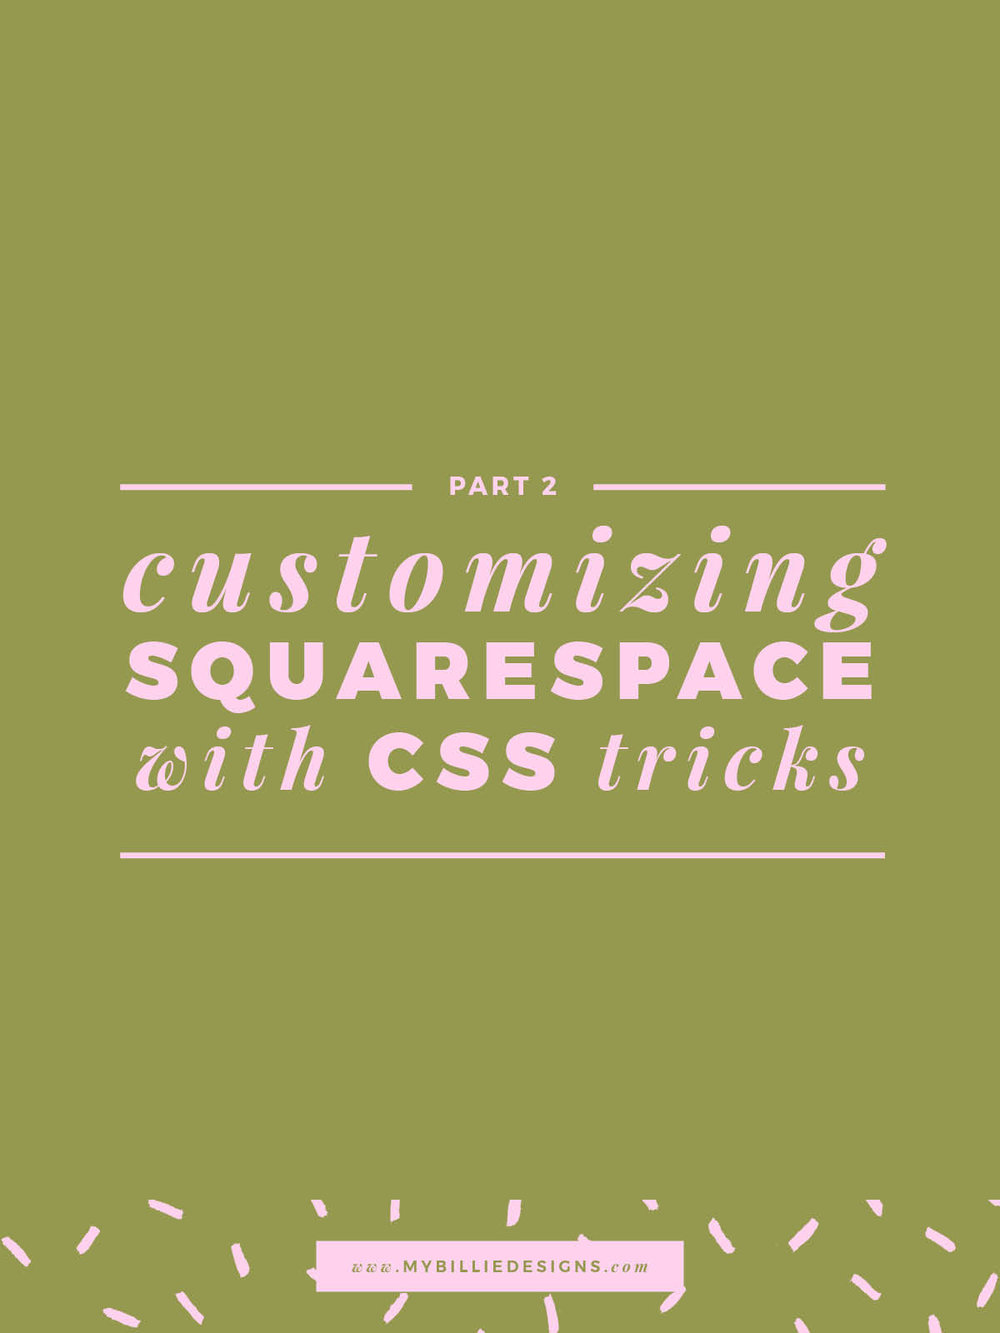 Customizing Squarespace with CSS Tricks Part 2.jpg